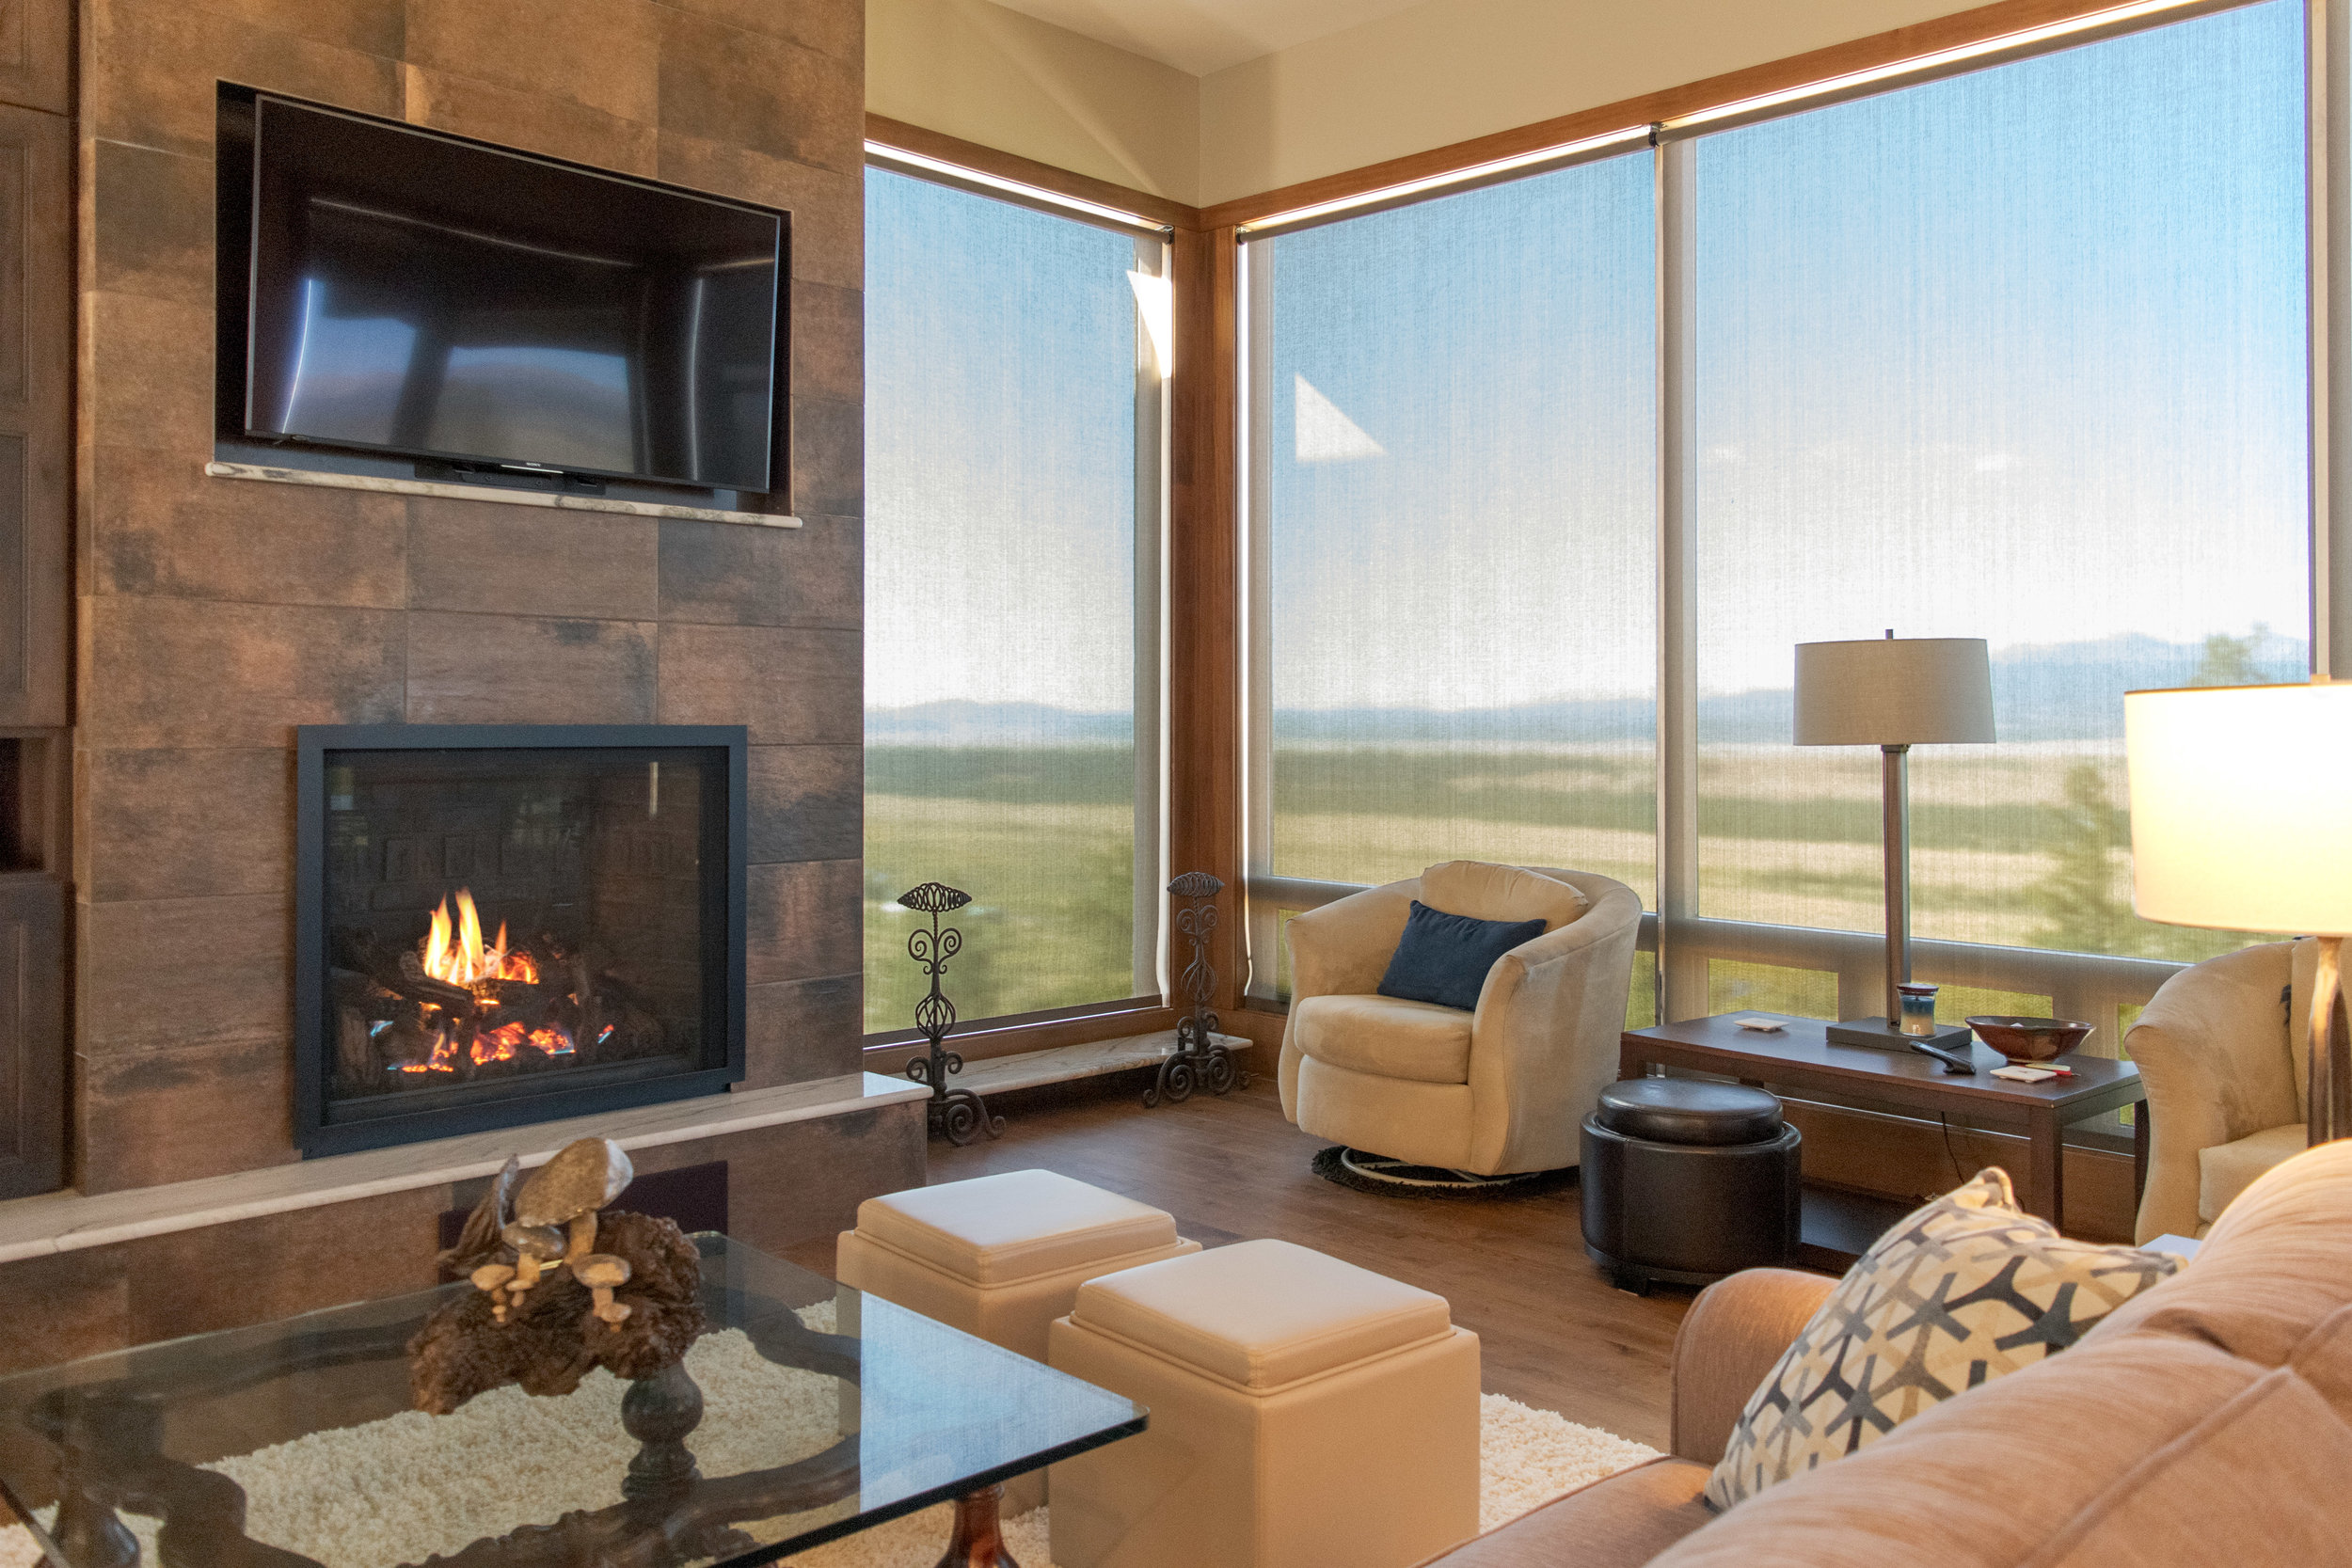 A Mendota FV46 Full View direct vent gas fireplace in a custom-built Fairplay home with contemporary styling.